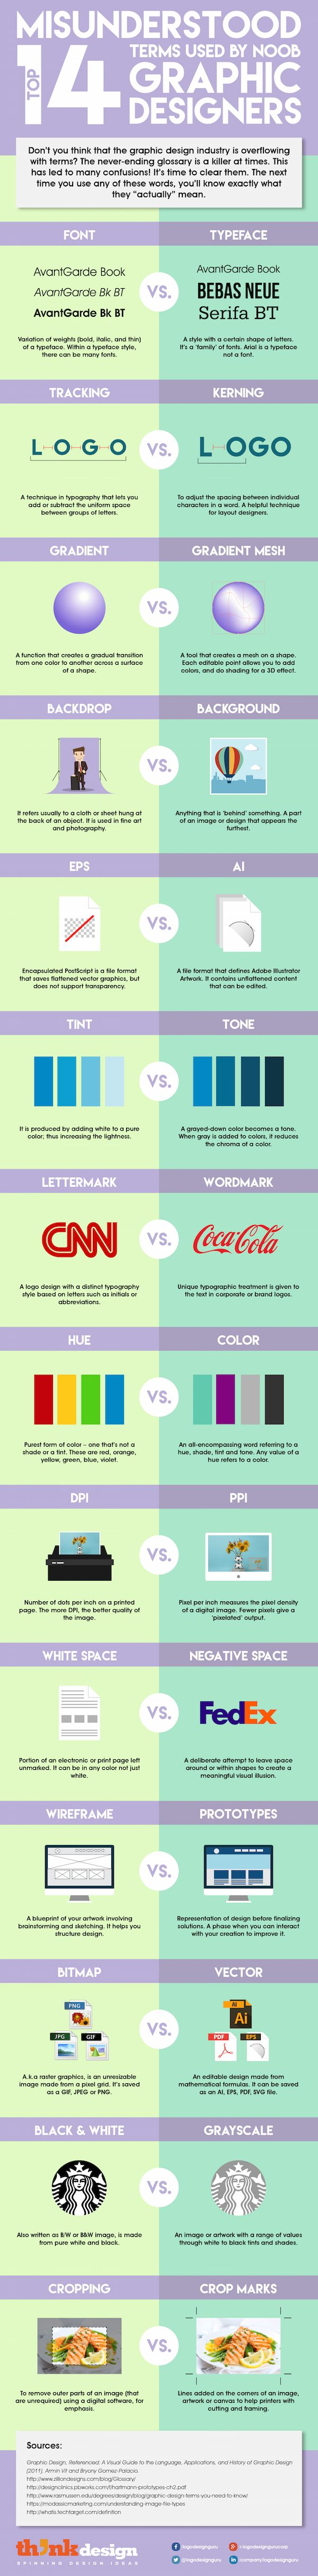 Infographic: Top 14 Graphic Design Terms Commonly Misused By Novice Creatives…